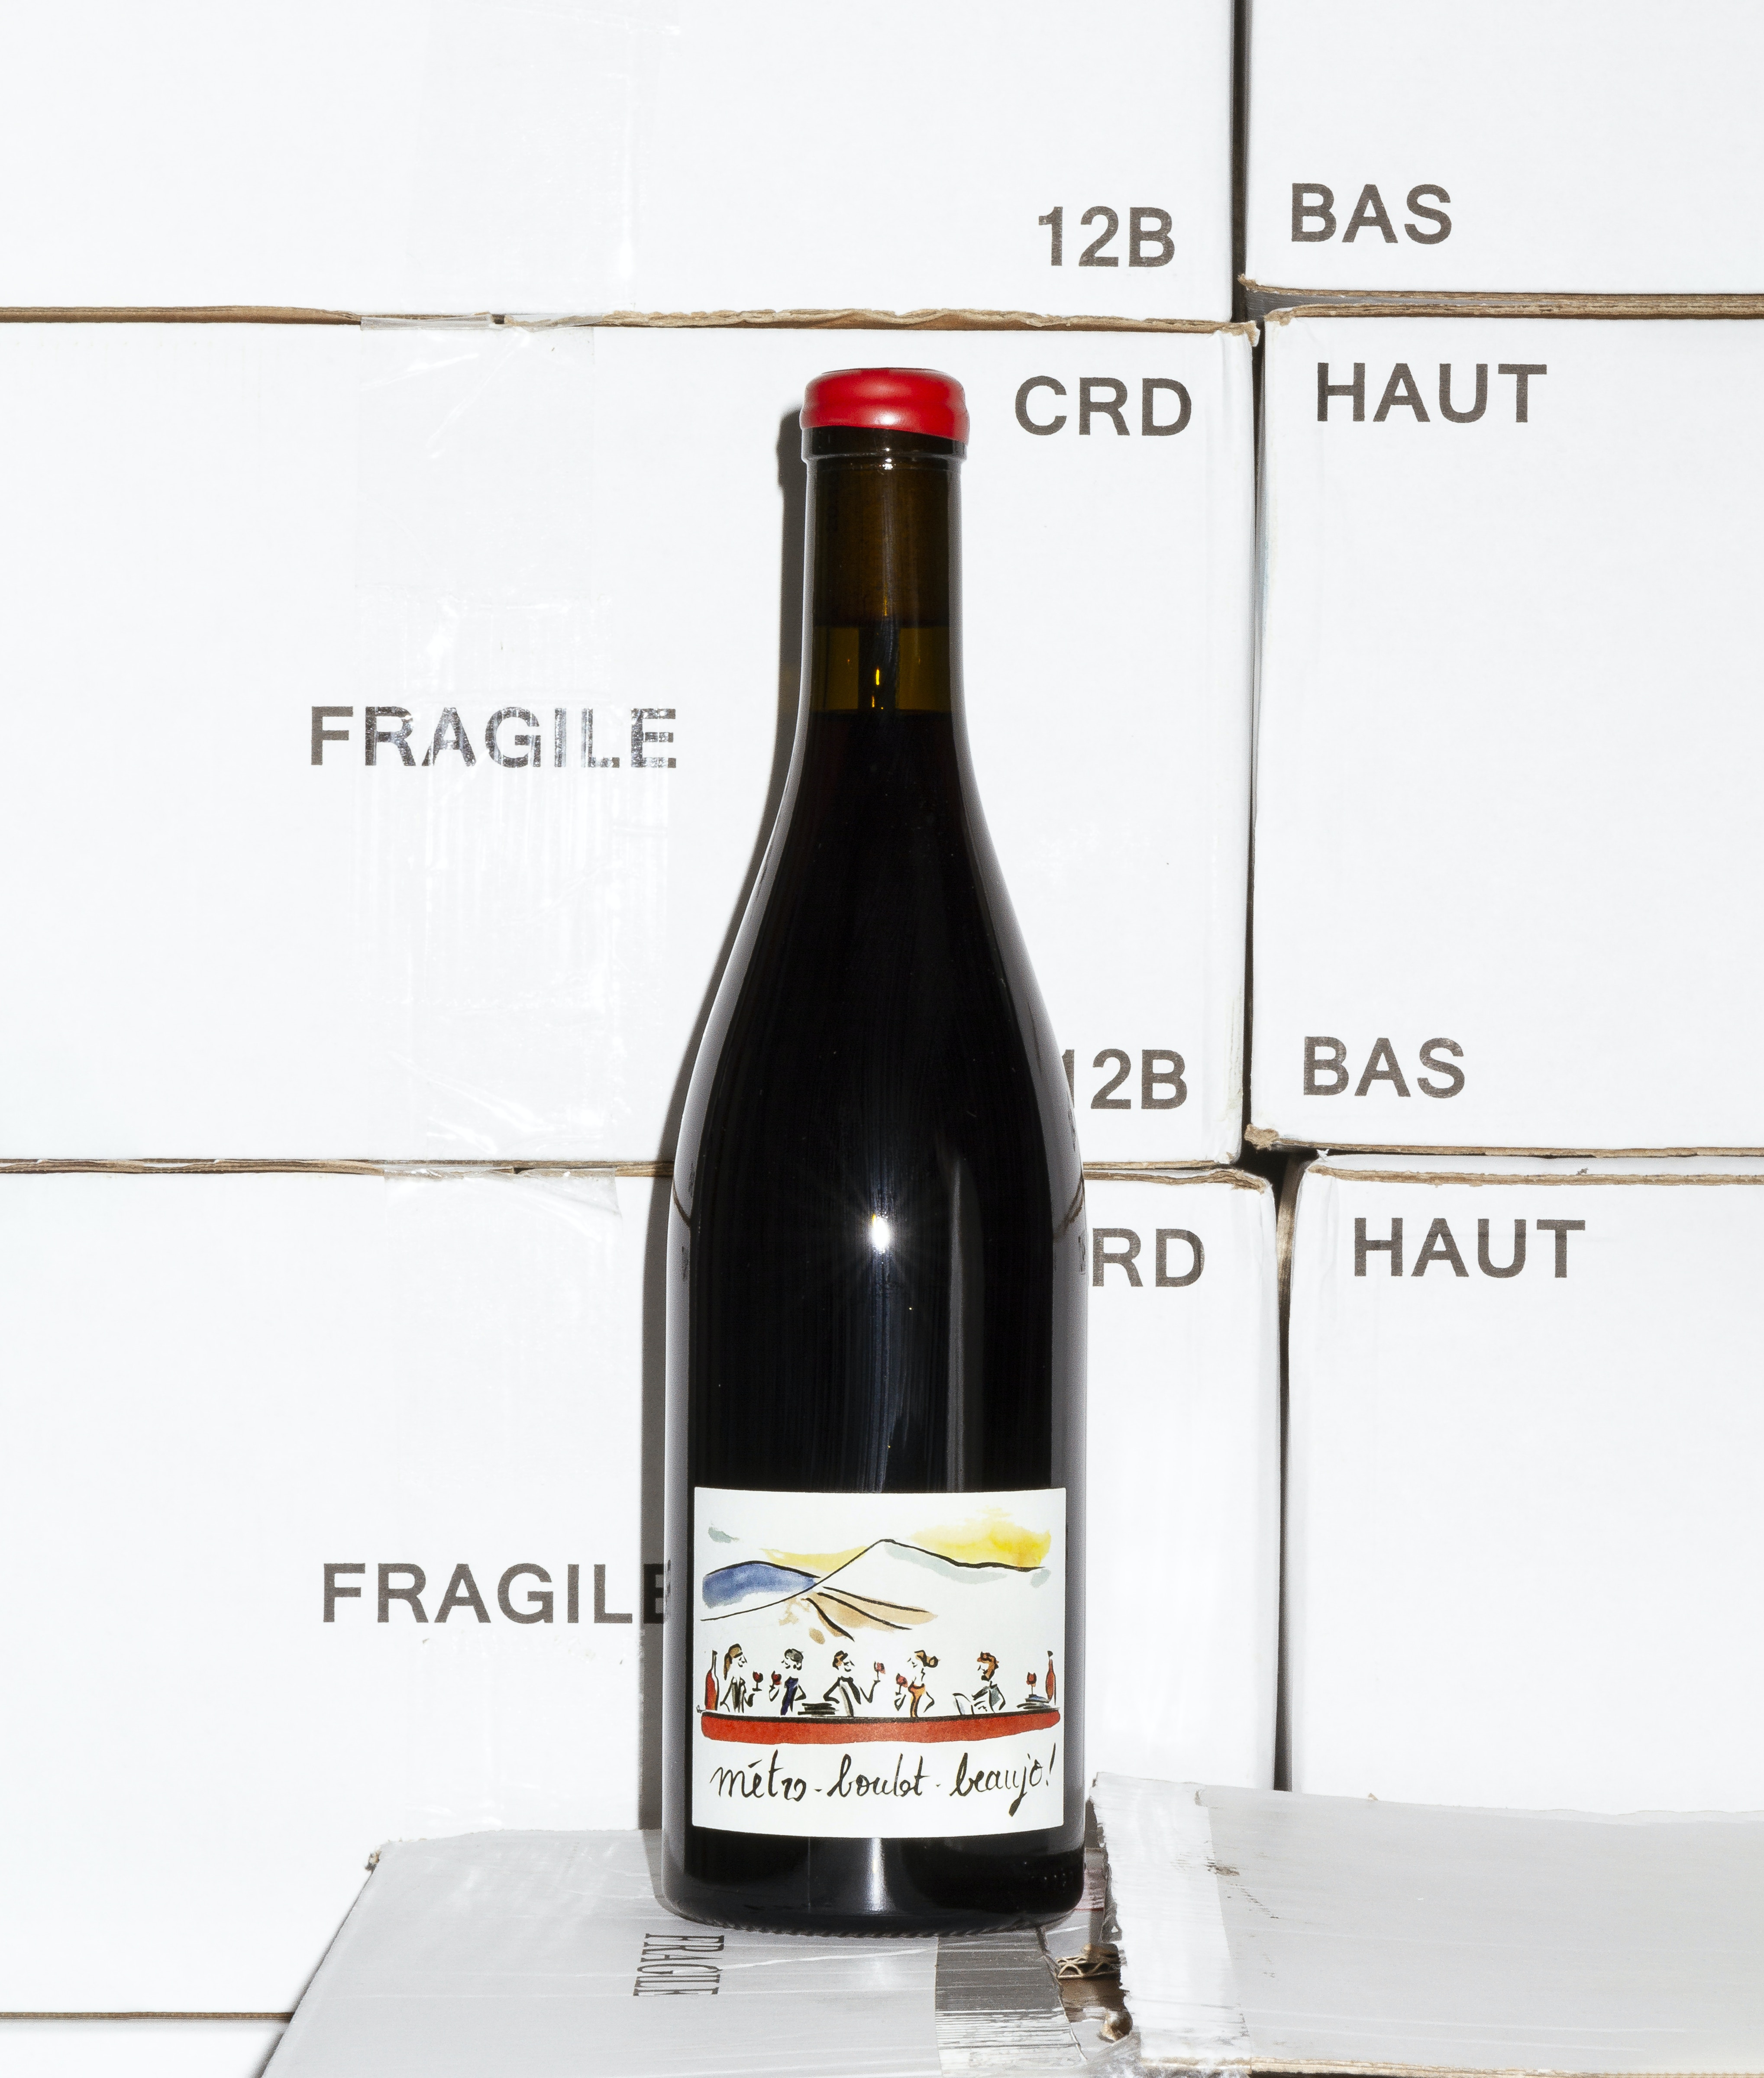 Metro - Boulot - Beaujo 2019 by Domaine des Canailles